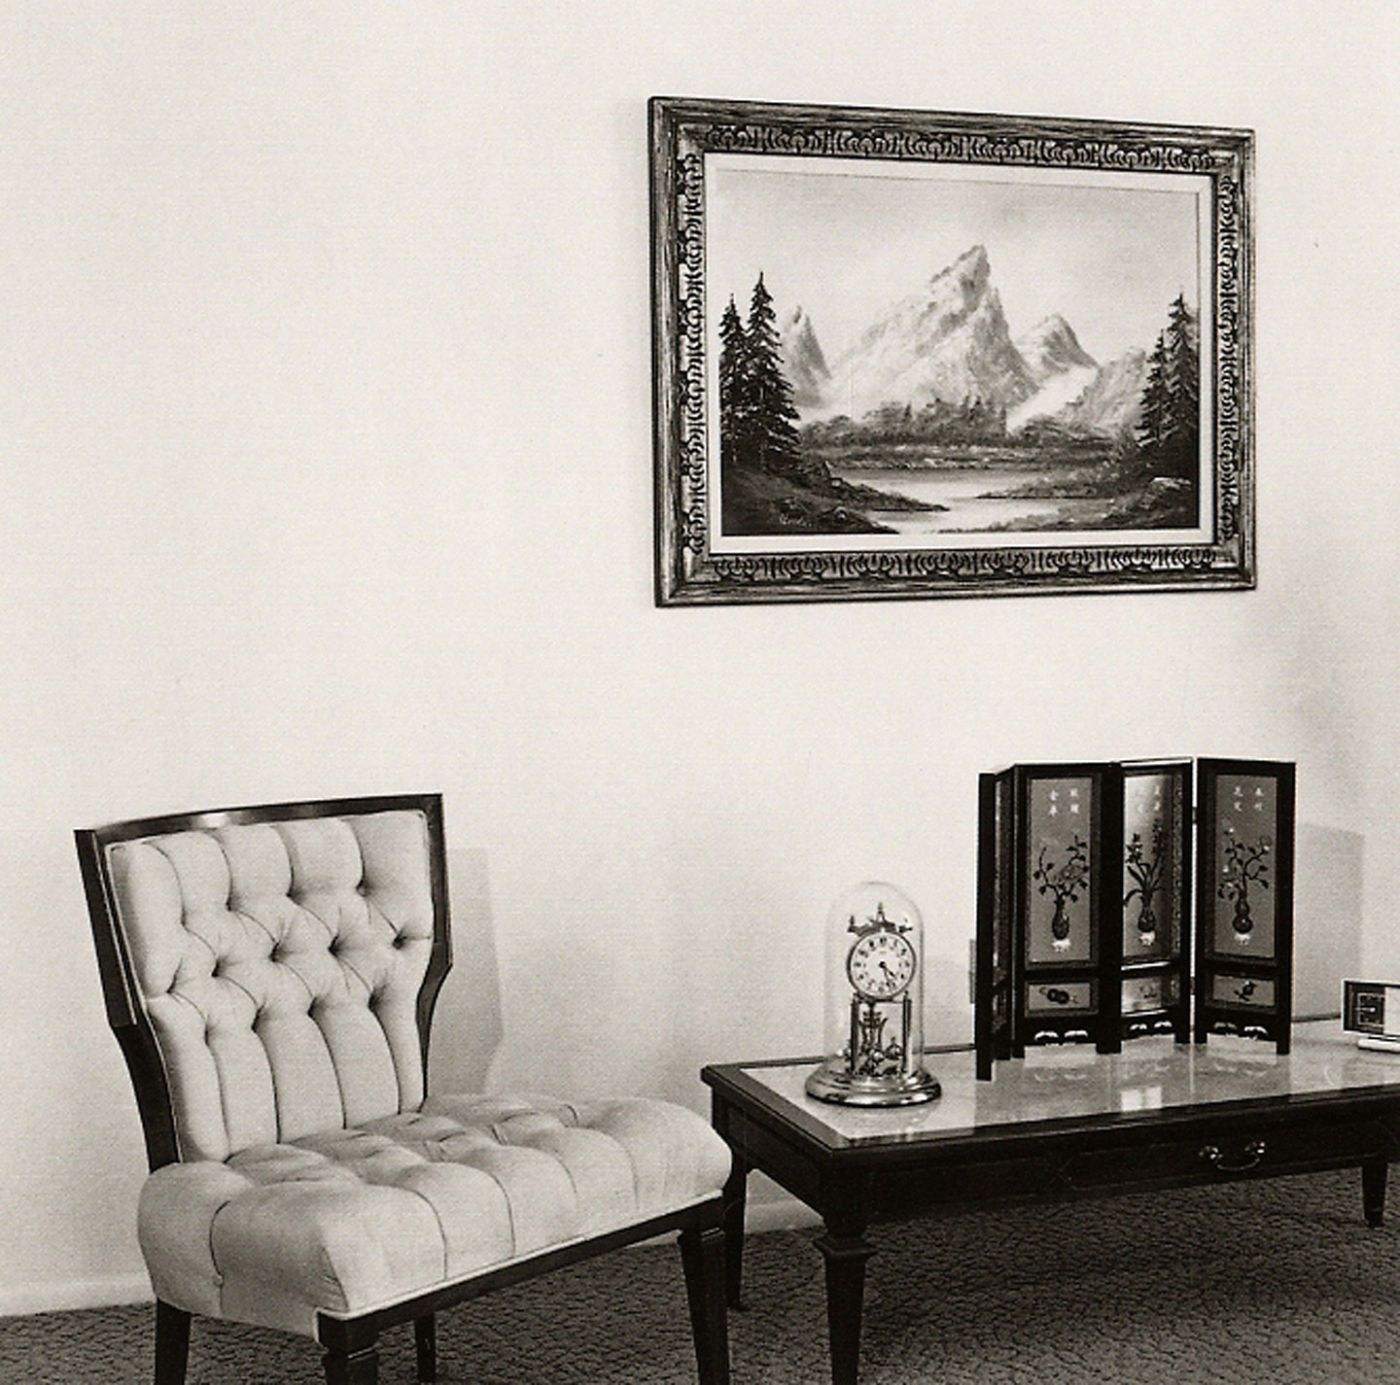 Charming Robert Adams: Interiors 1973 1974, Limited Edition [SIGNED]